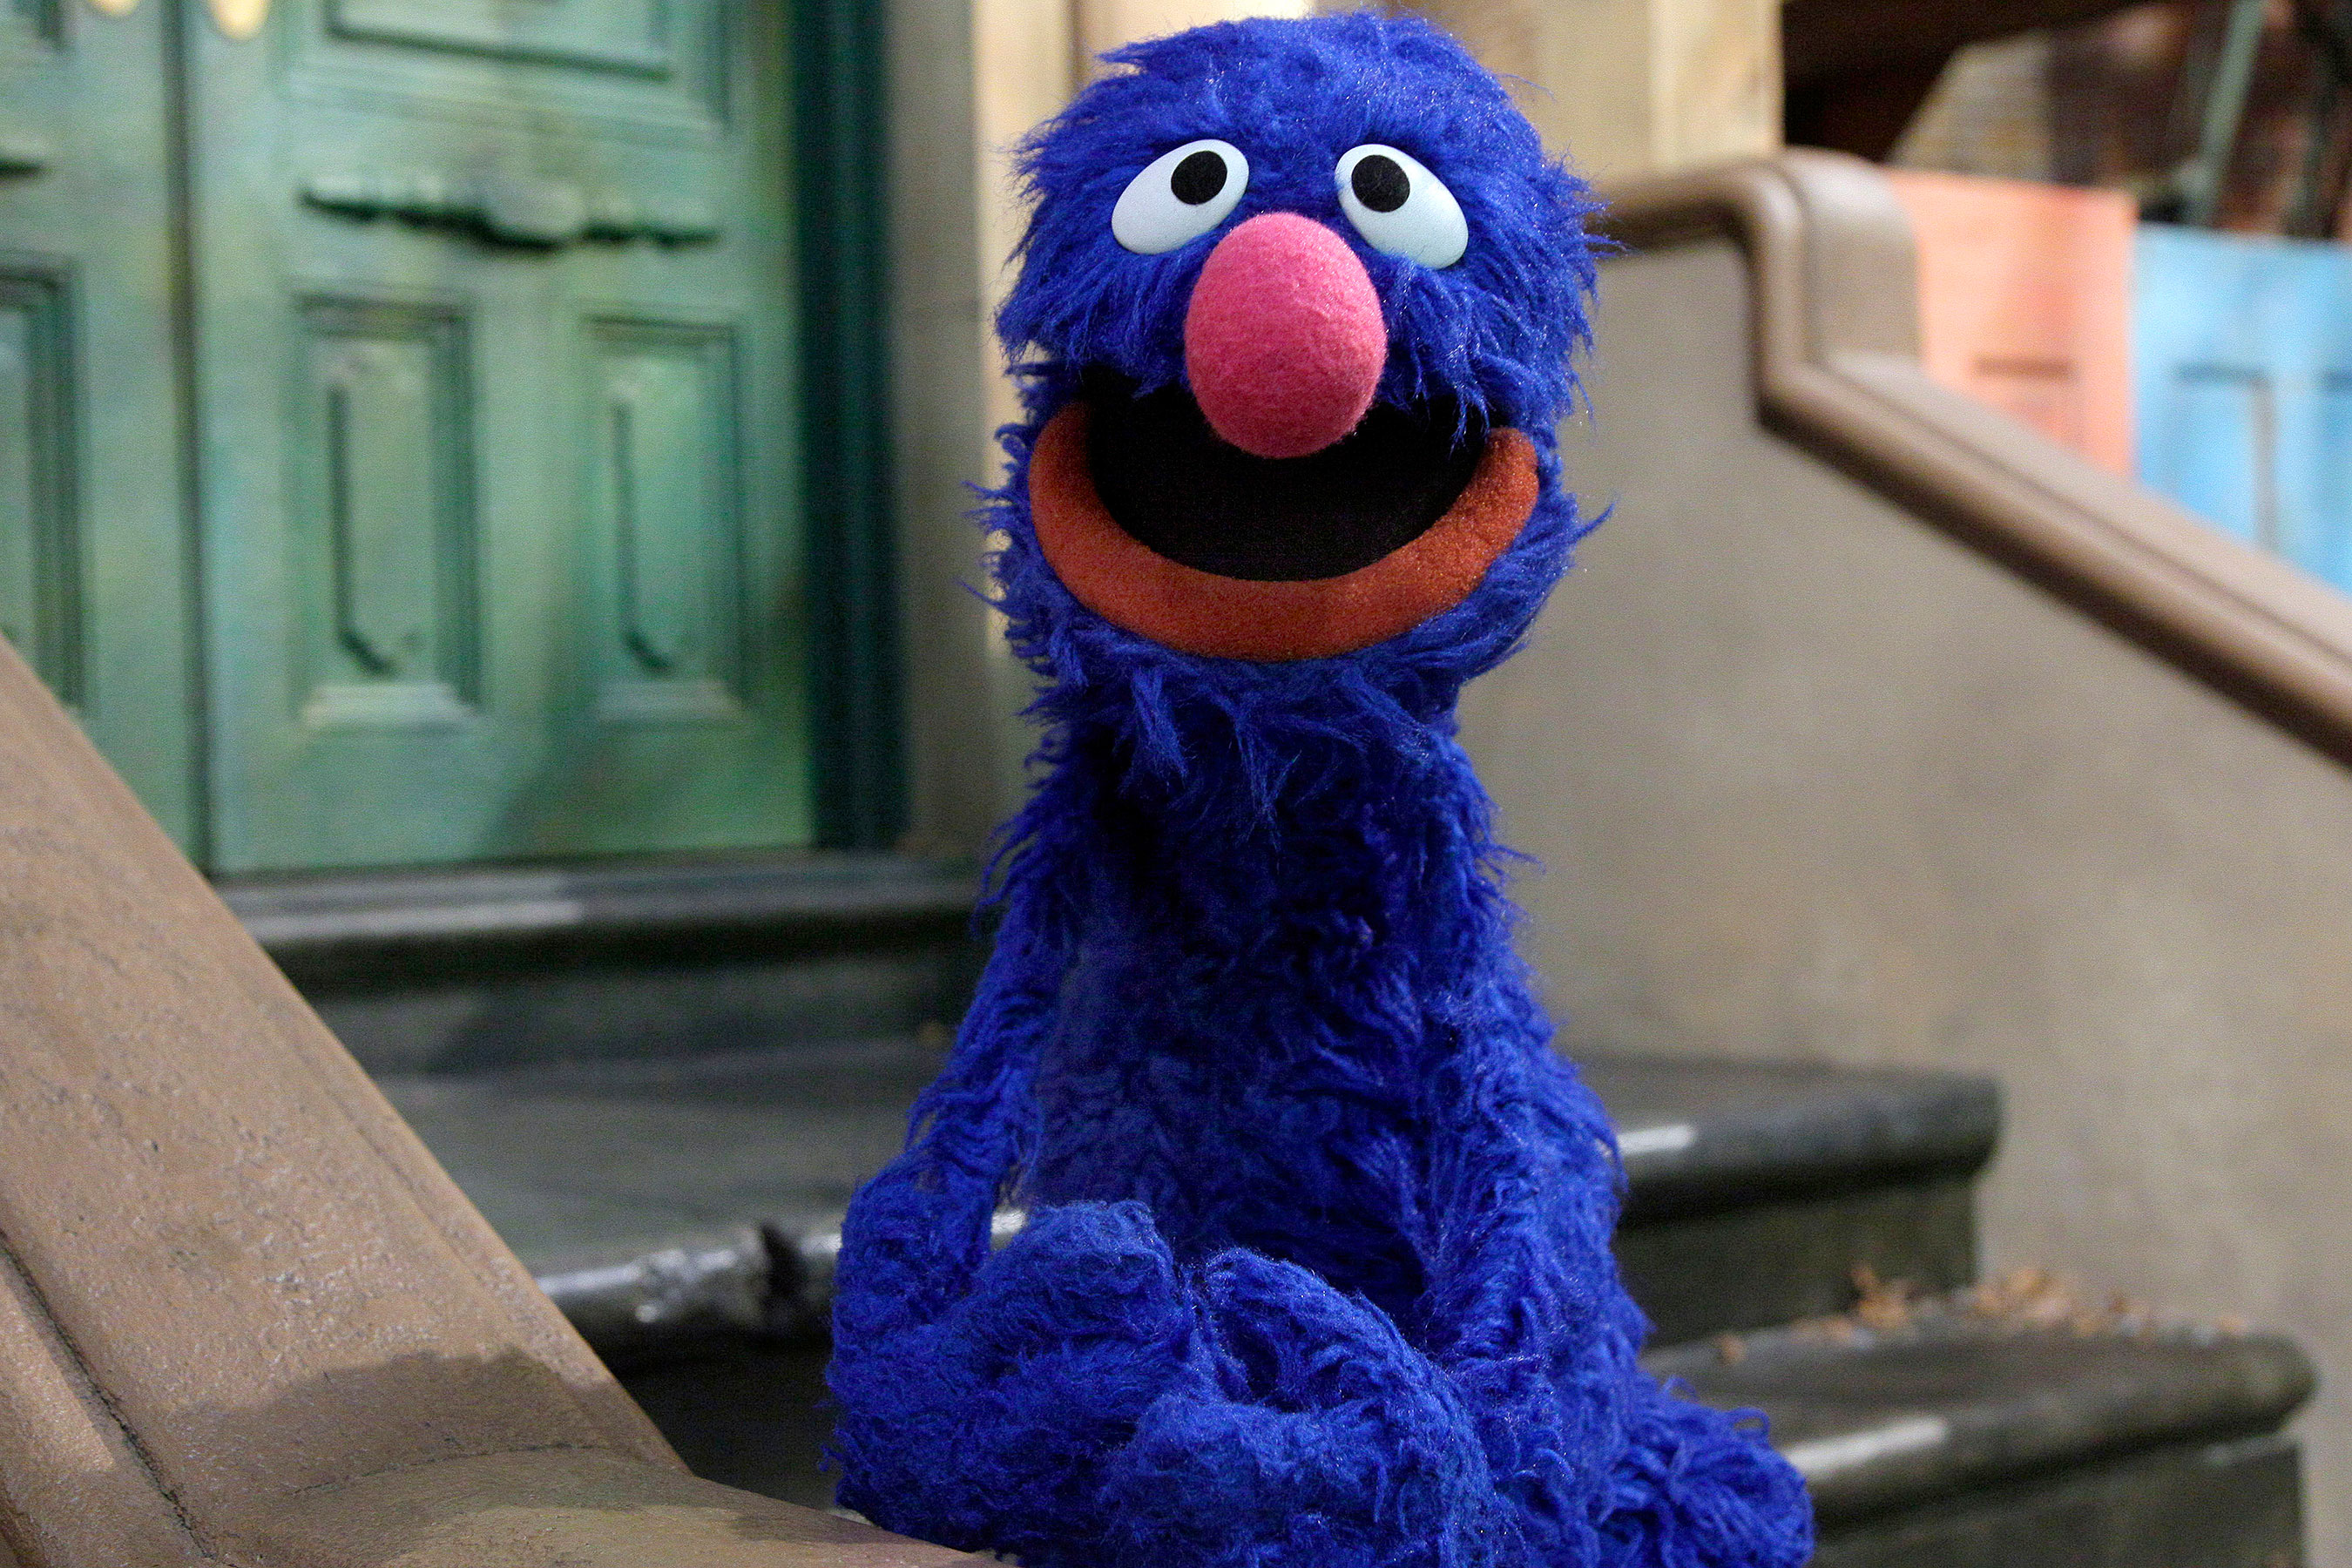 People Think Grover Just Dropped the F-Bomb on Sesame Street—What Do You Hear?